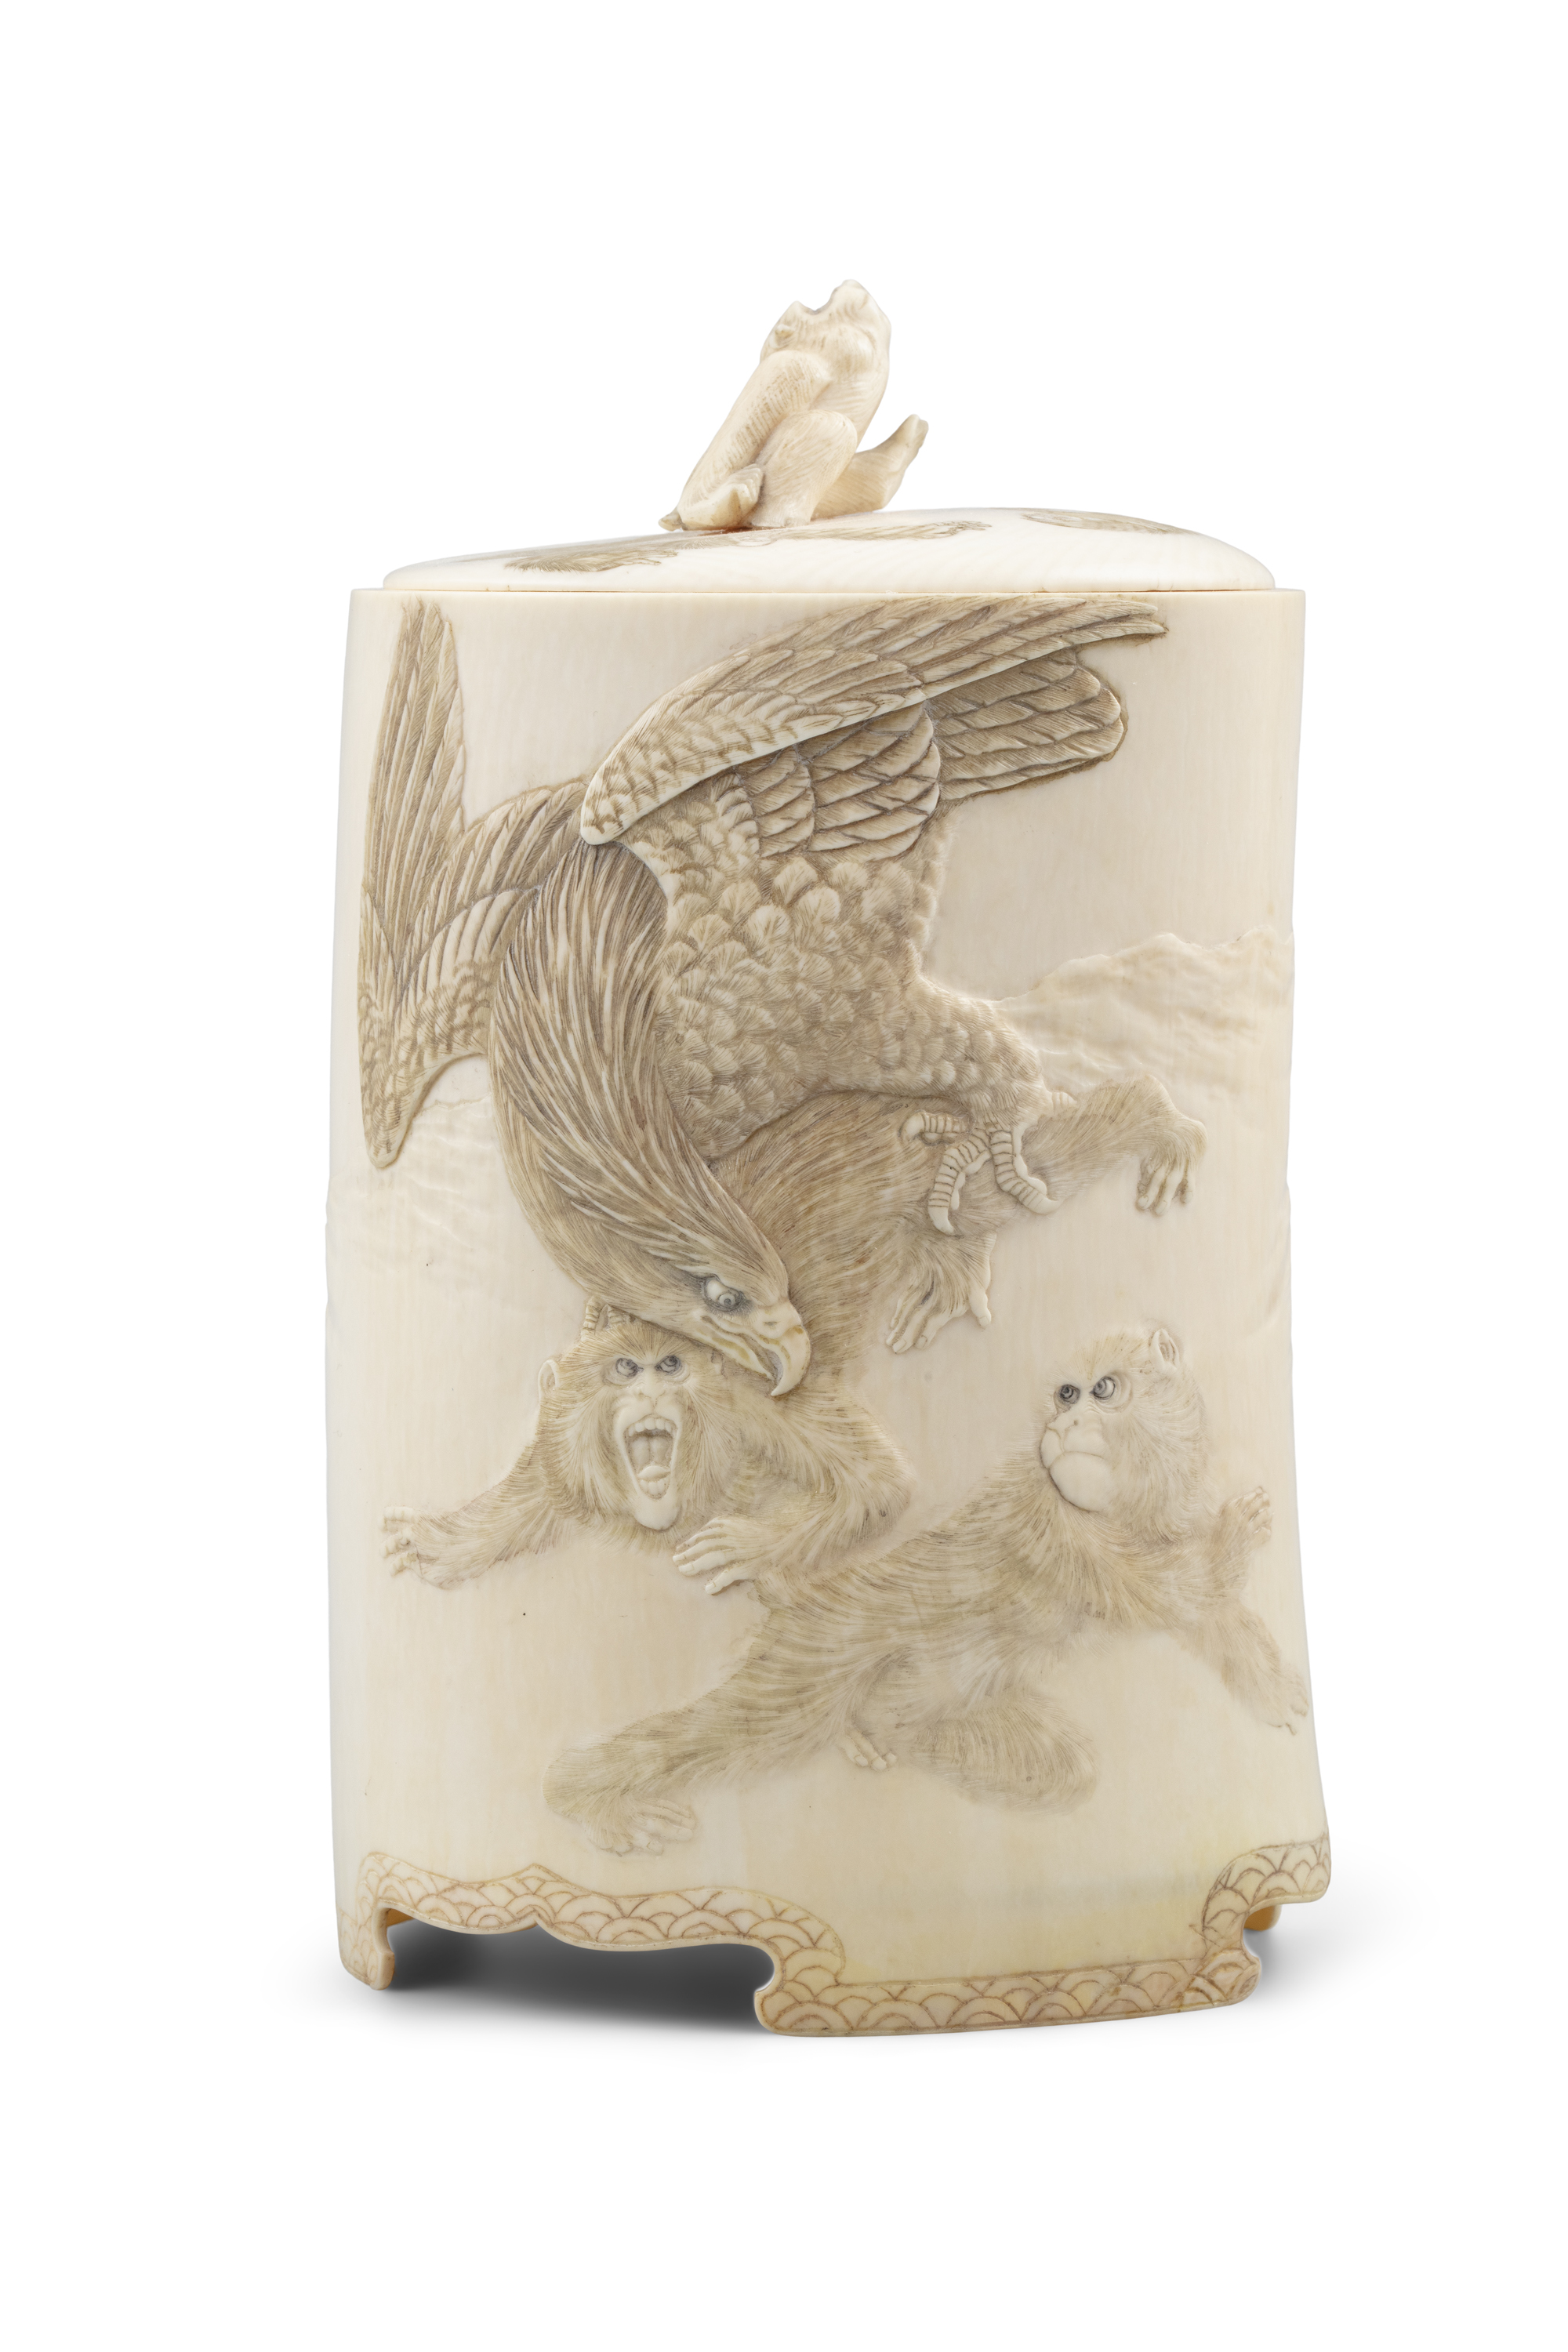 *AN IVORY 'MONKEYS AND EAGLE' BOX AND COVER Japan, Meiji period The outer is adorned in low-relief